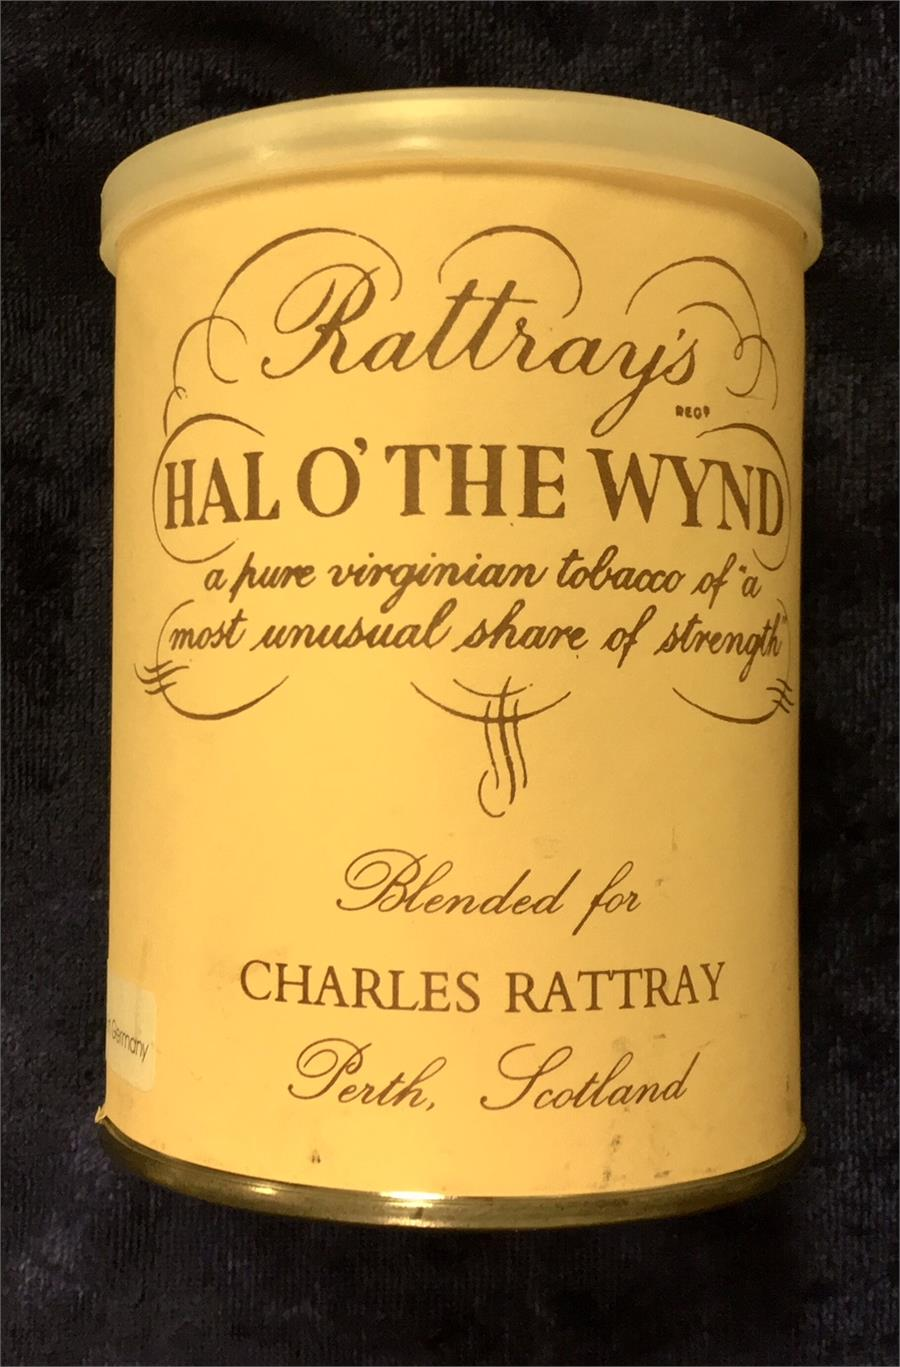 Rattray's: HAL O' THE WYND 100g 1995 - C - 4Noggins.com